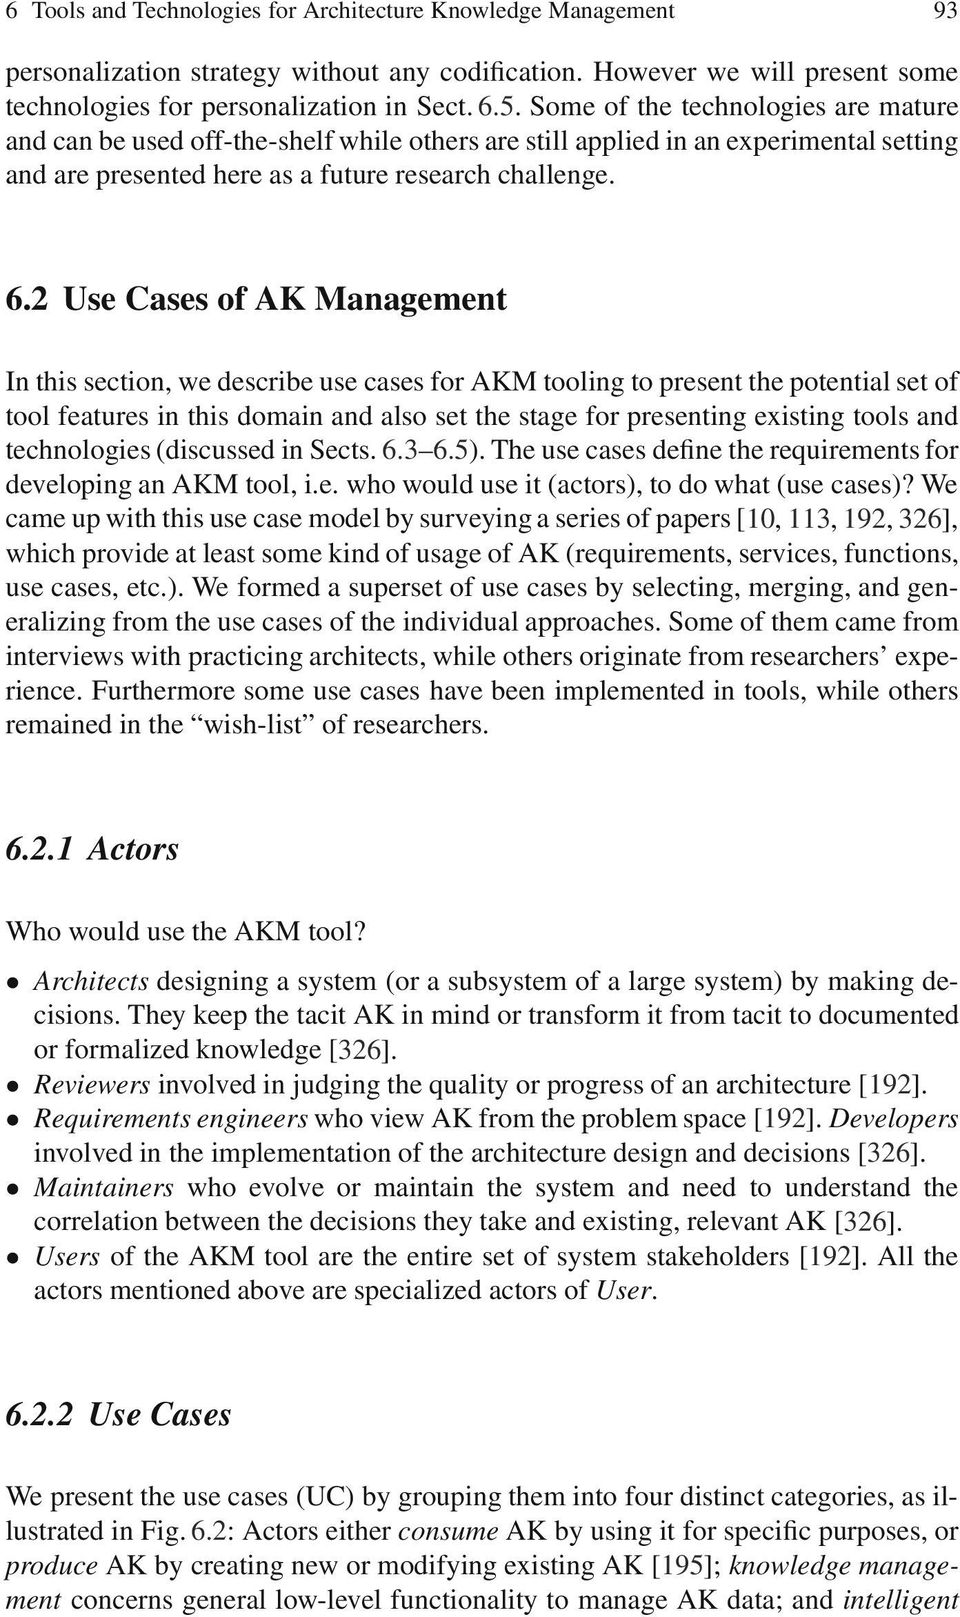 2 Use Cases of AK Management In this section, we describe use cases for AKM tooling to present the potential set of tool features in this domain and also set the stage for presenting existing tools